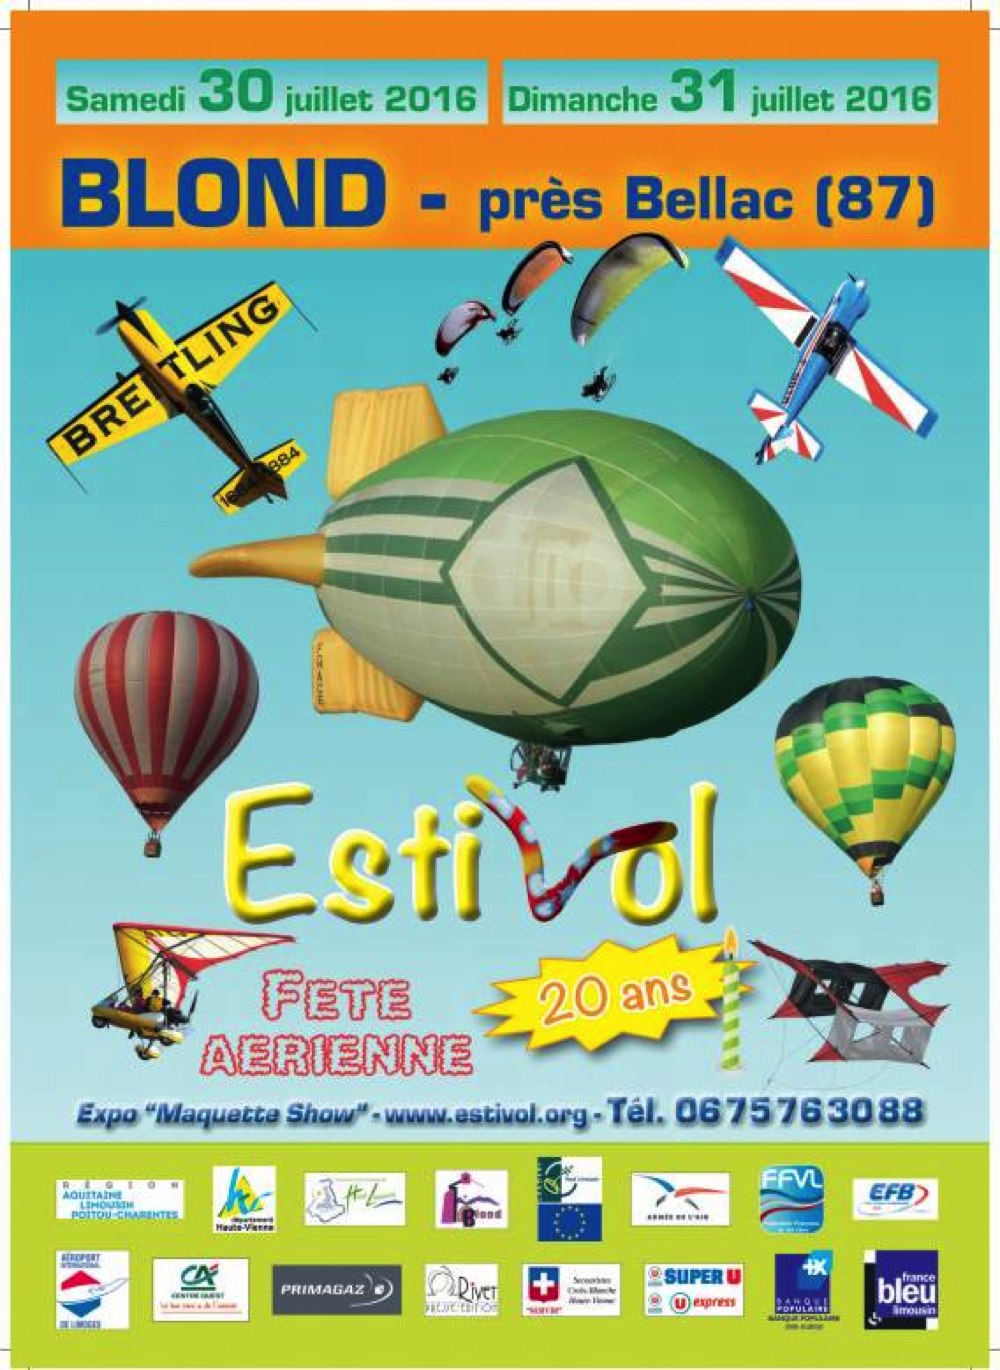 Festival Estivol 2016, 20ème ANNIVERSAIRE ESTIVOL,Les Meetings de l'Air édition 2016, Meeting Aerien 2016,Airshow 2016, French Airshow 2016